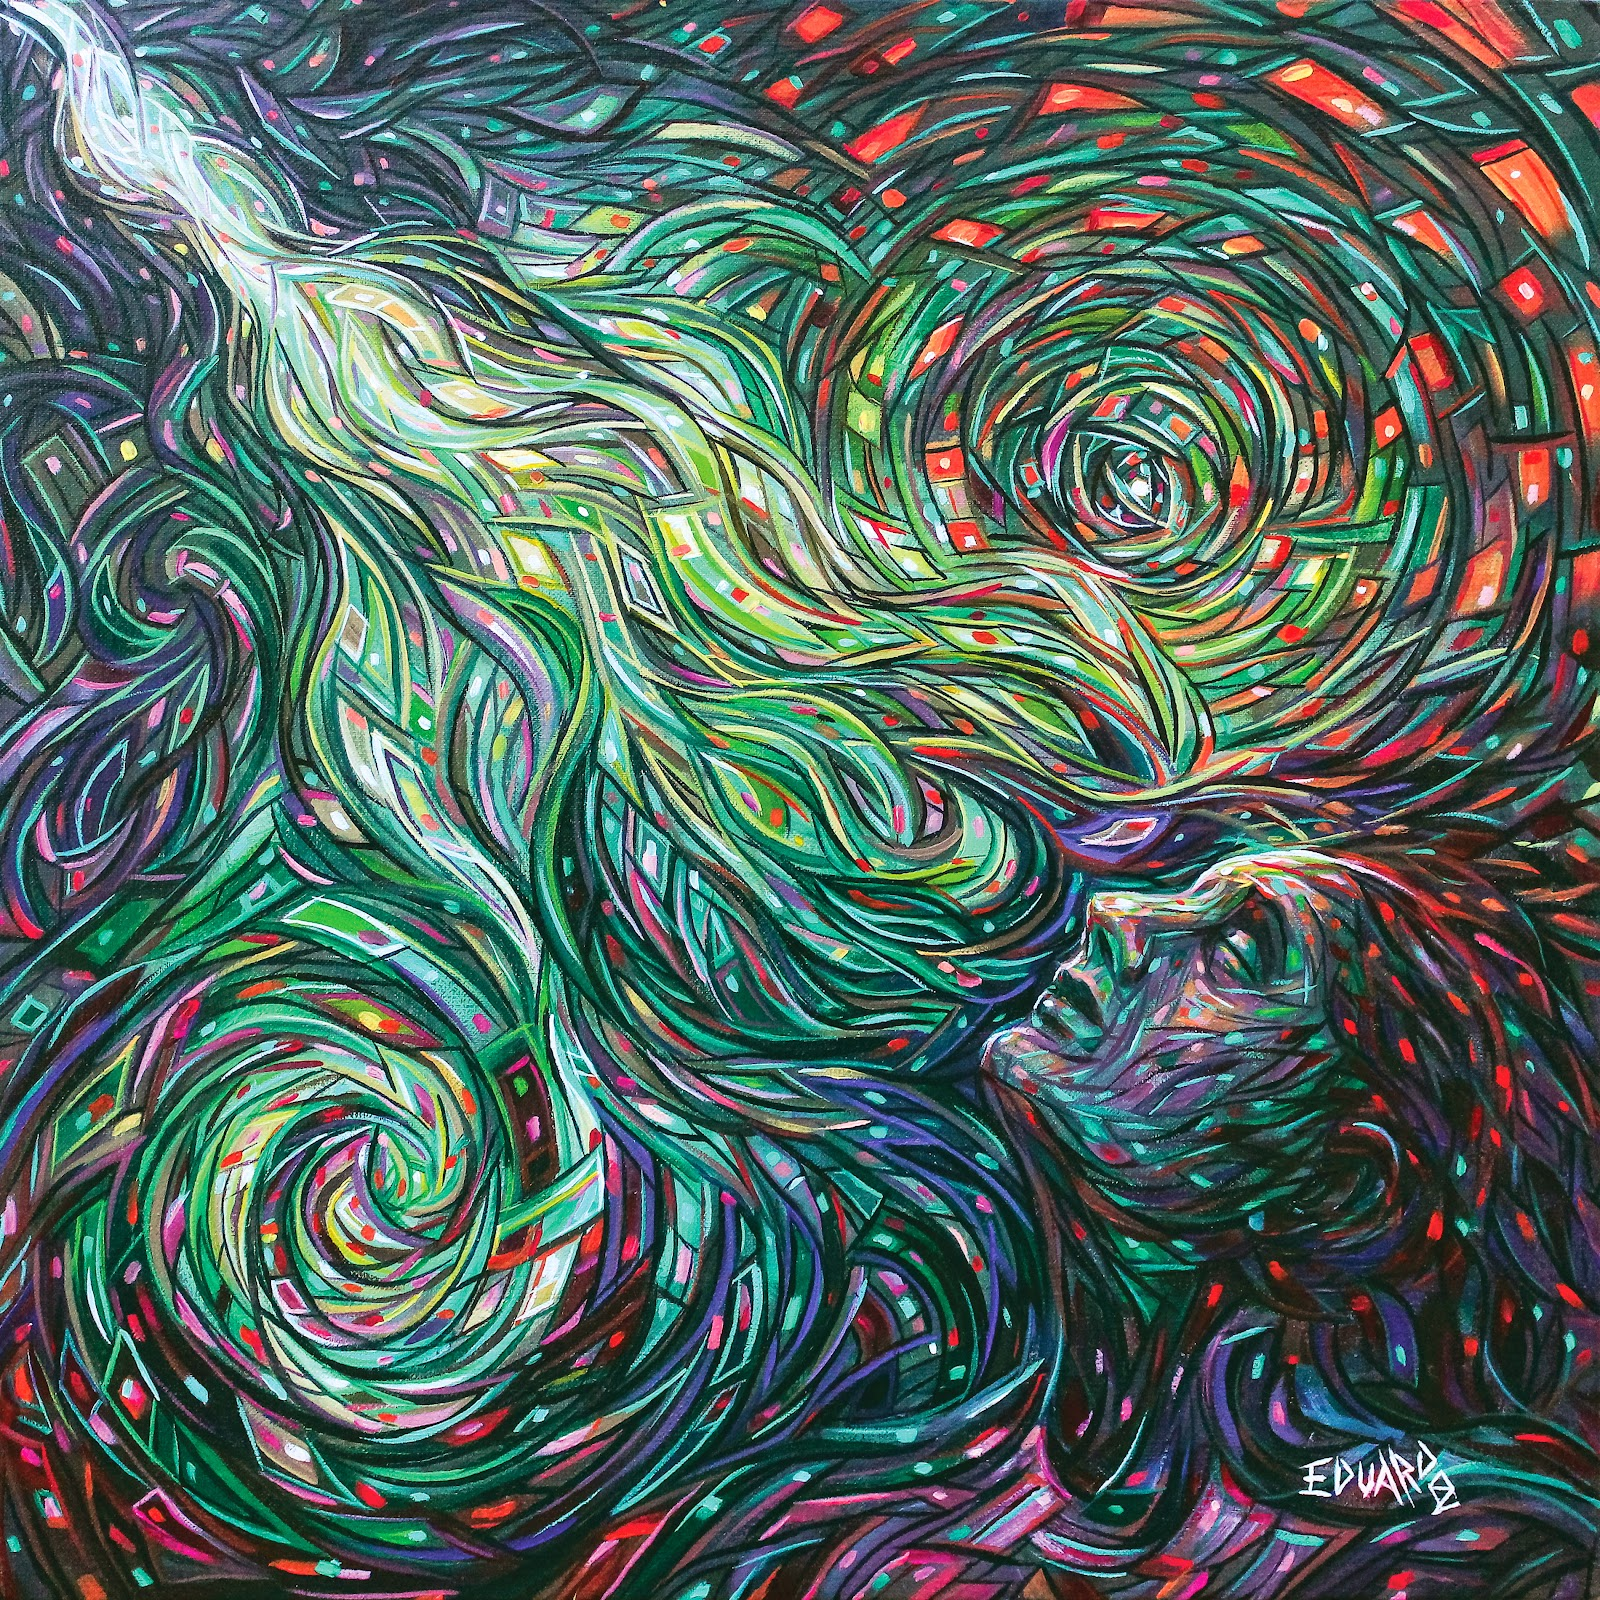 13-Mental-Image-Eduardo-R-Calzado-Paintings-in-Swirls-of-Colour-www-designstack-co